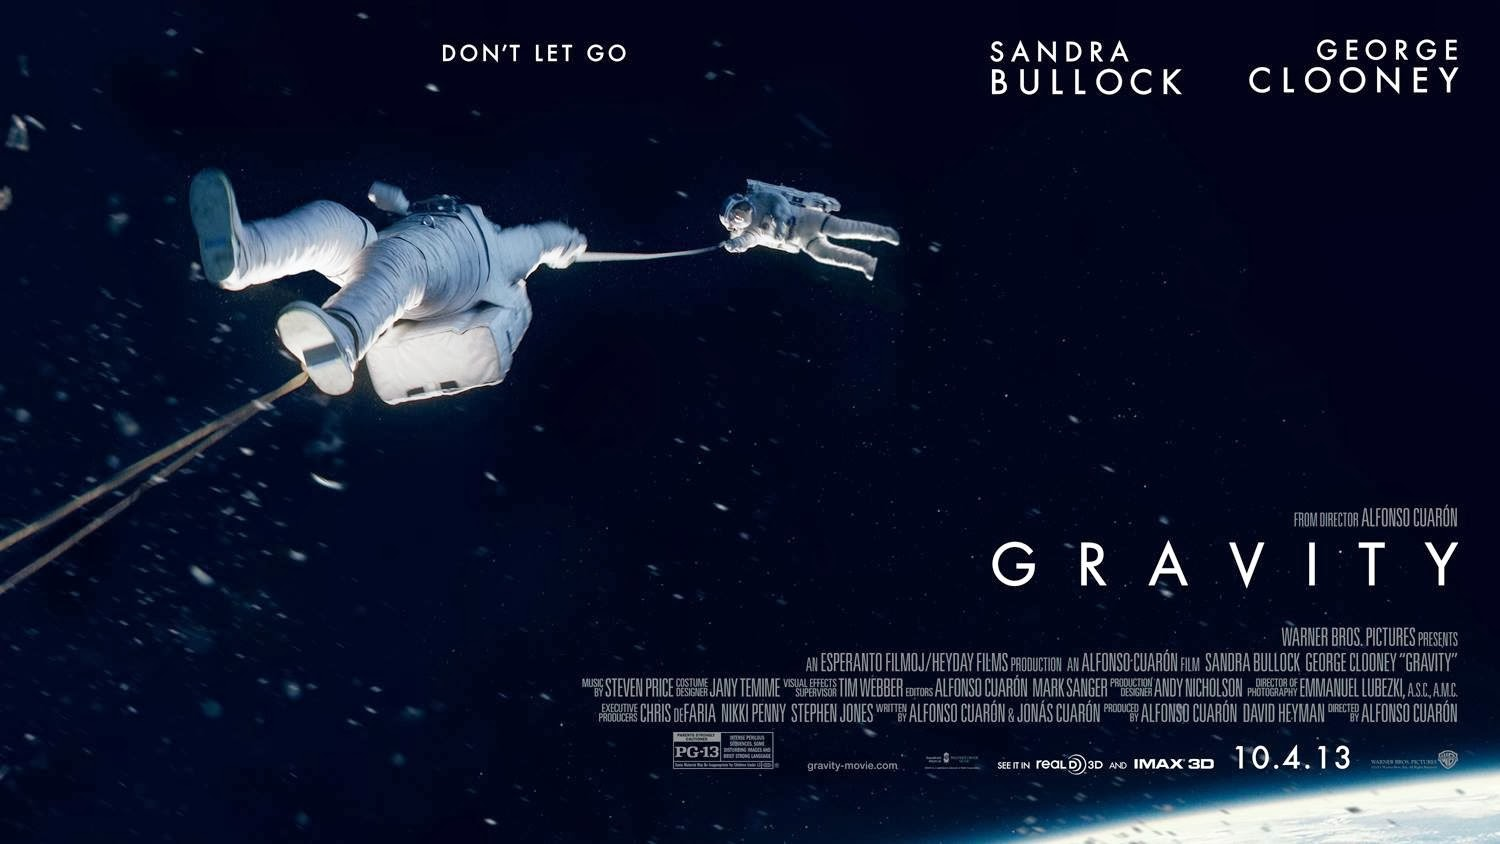 Poster of Gravity movie showing two men in space